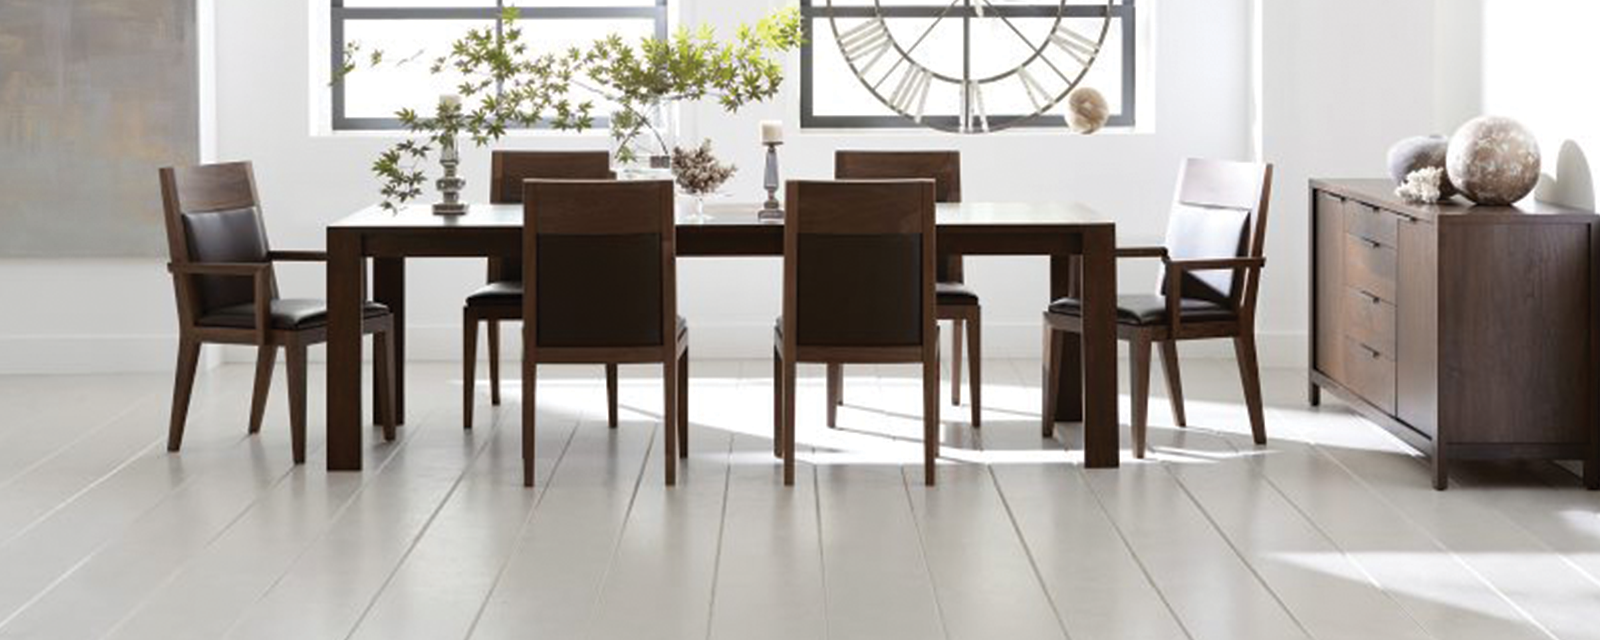 Six Popular Types of Calgary Dining Room Chairs to Consider